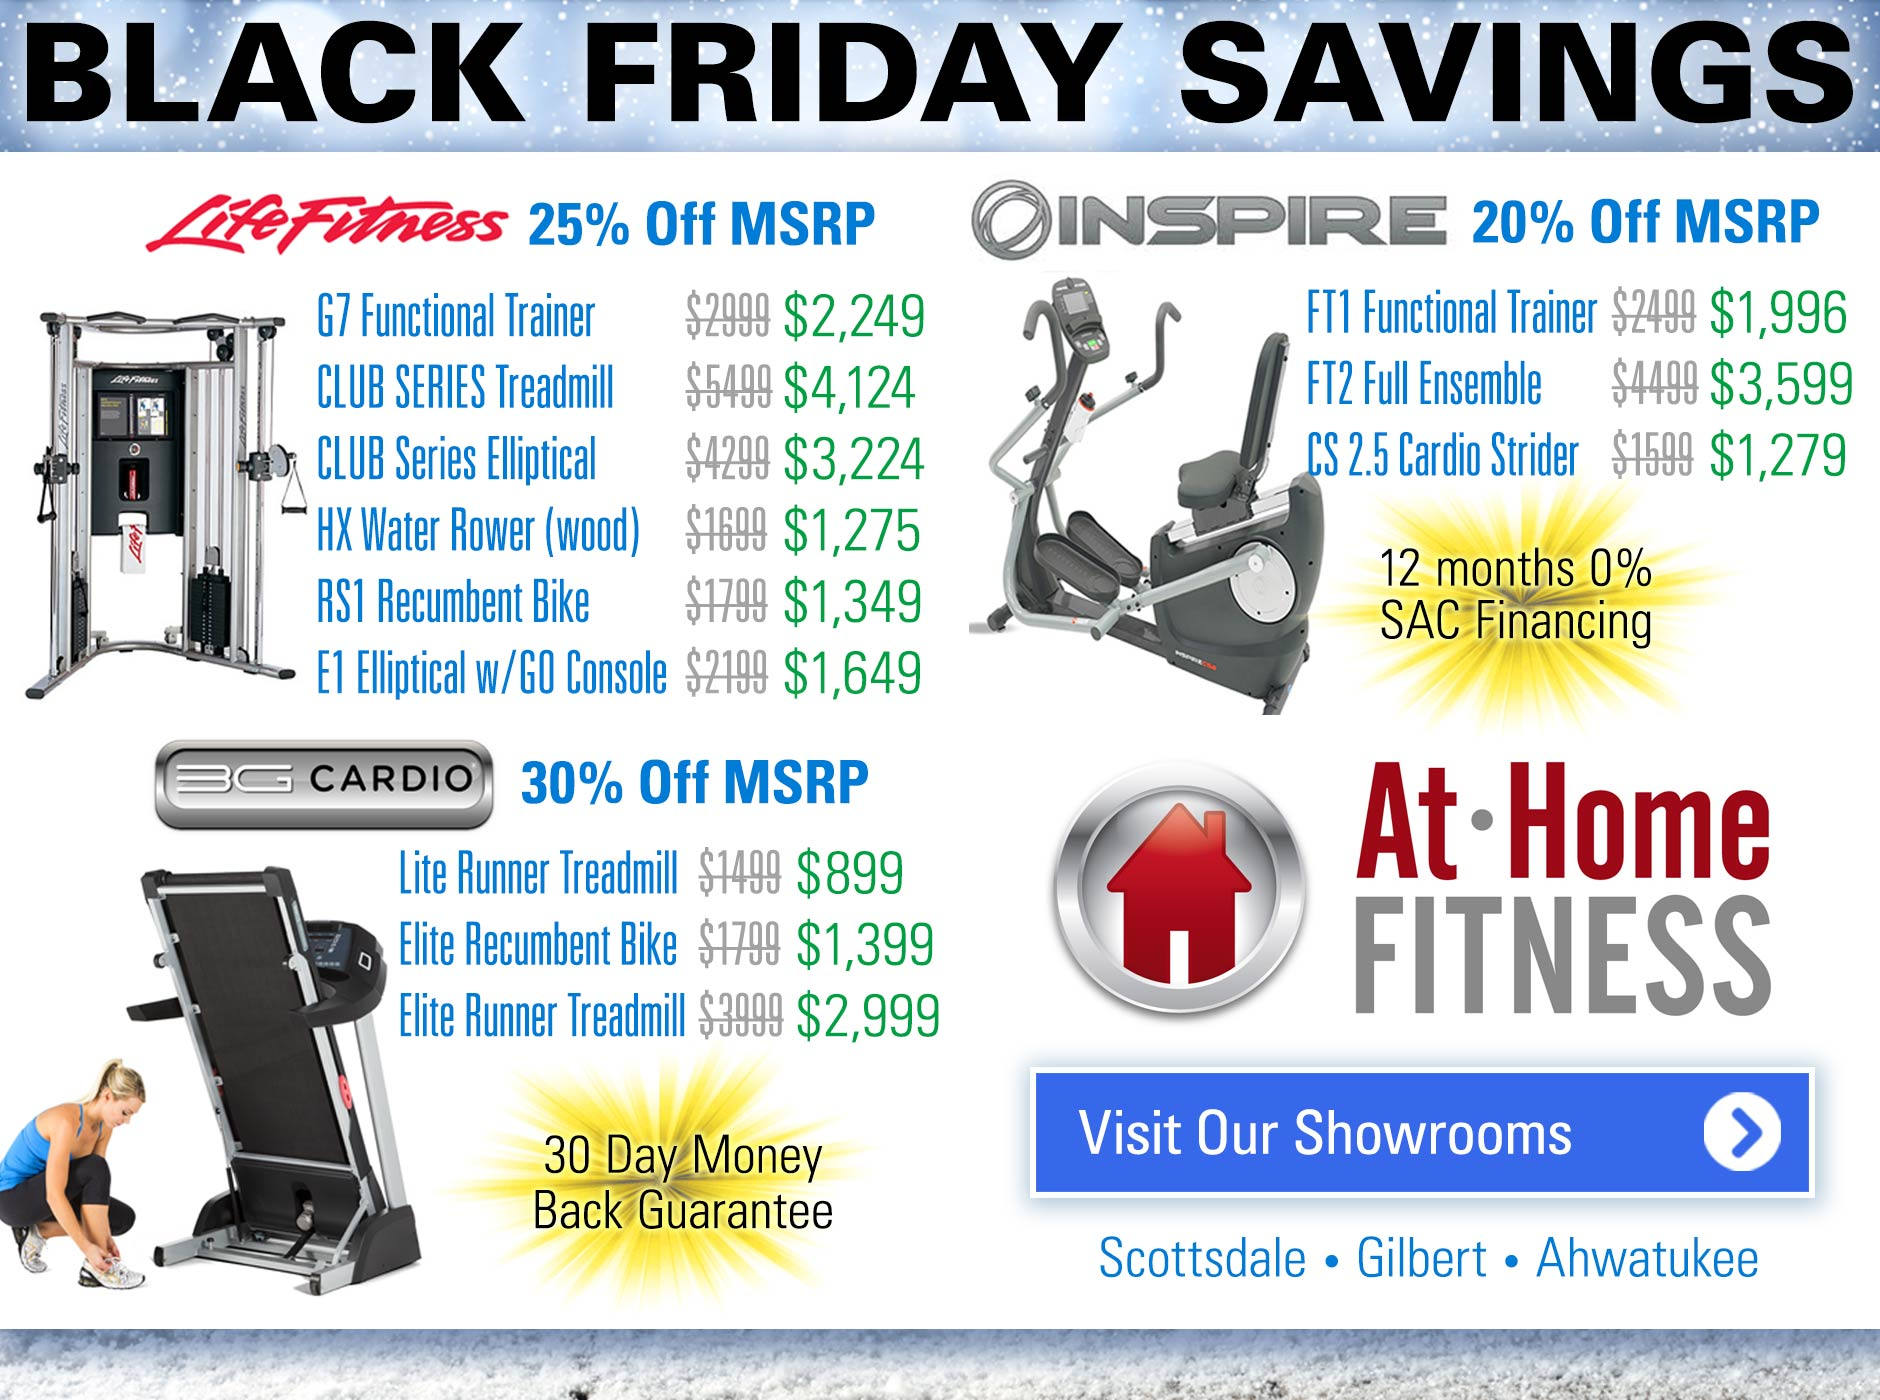 At home fitness black Friday savings 2017